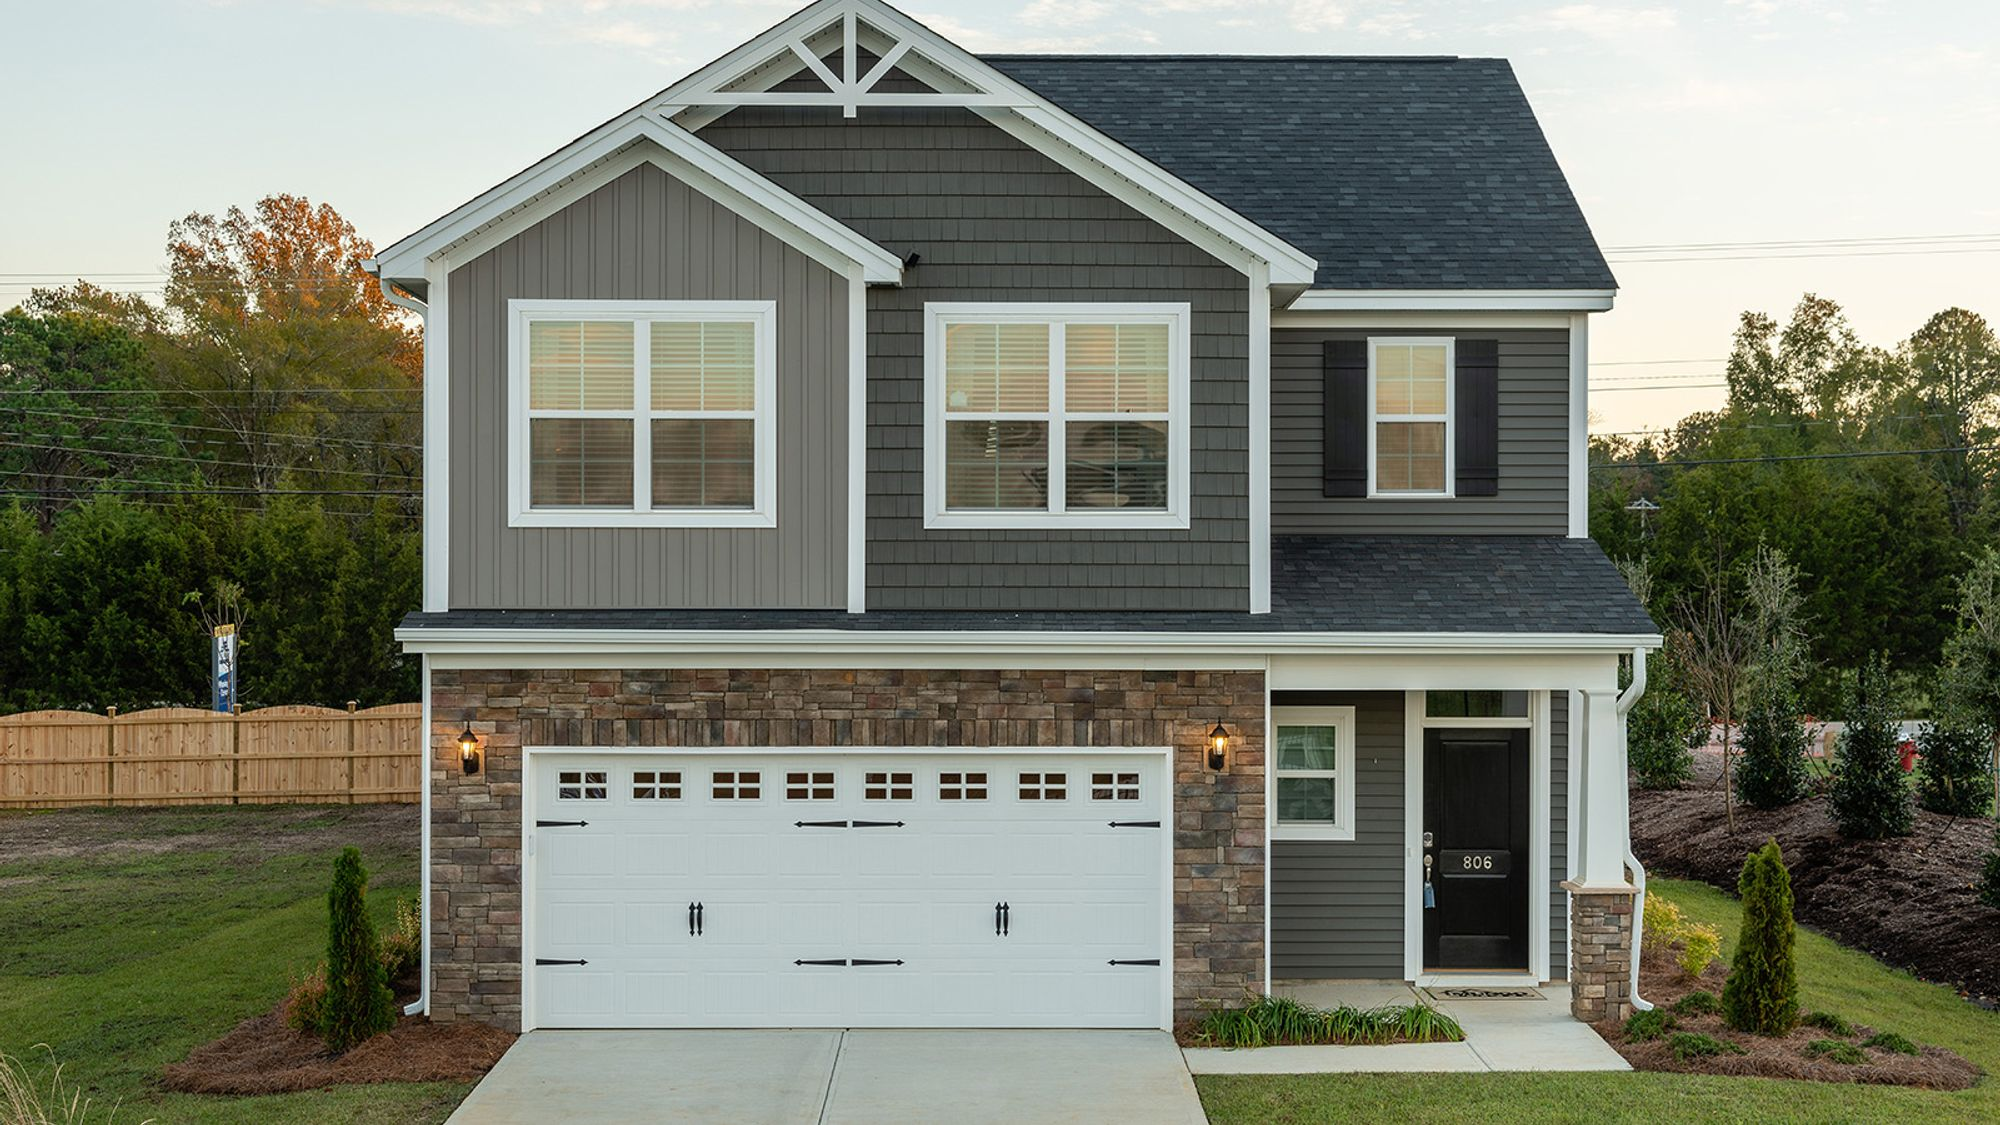 New home in Franklinton, NC, with gray exterior